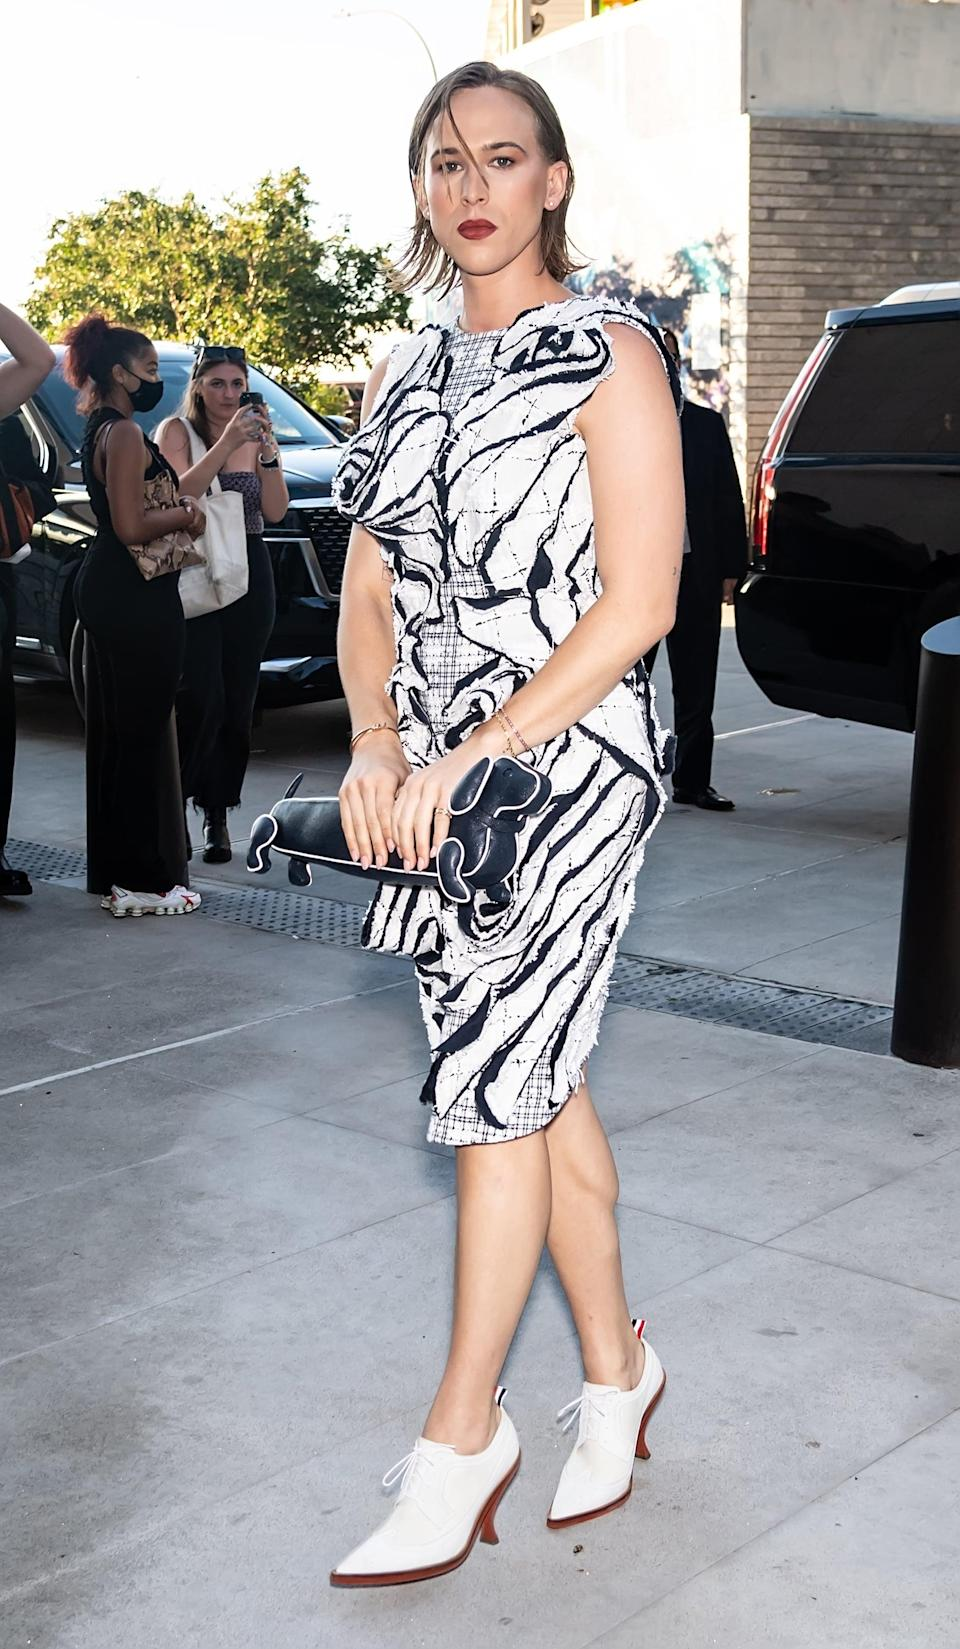 <p>She chose a black-and-white printed dress and lace-up booties for the occasion.</p>